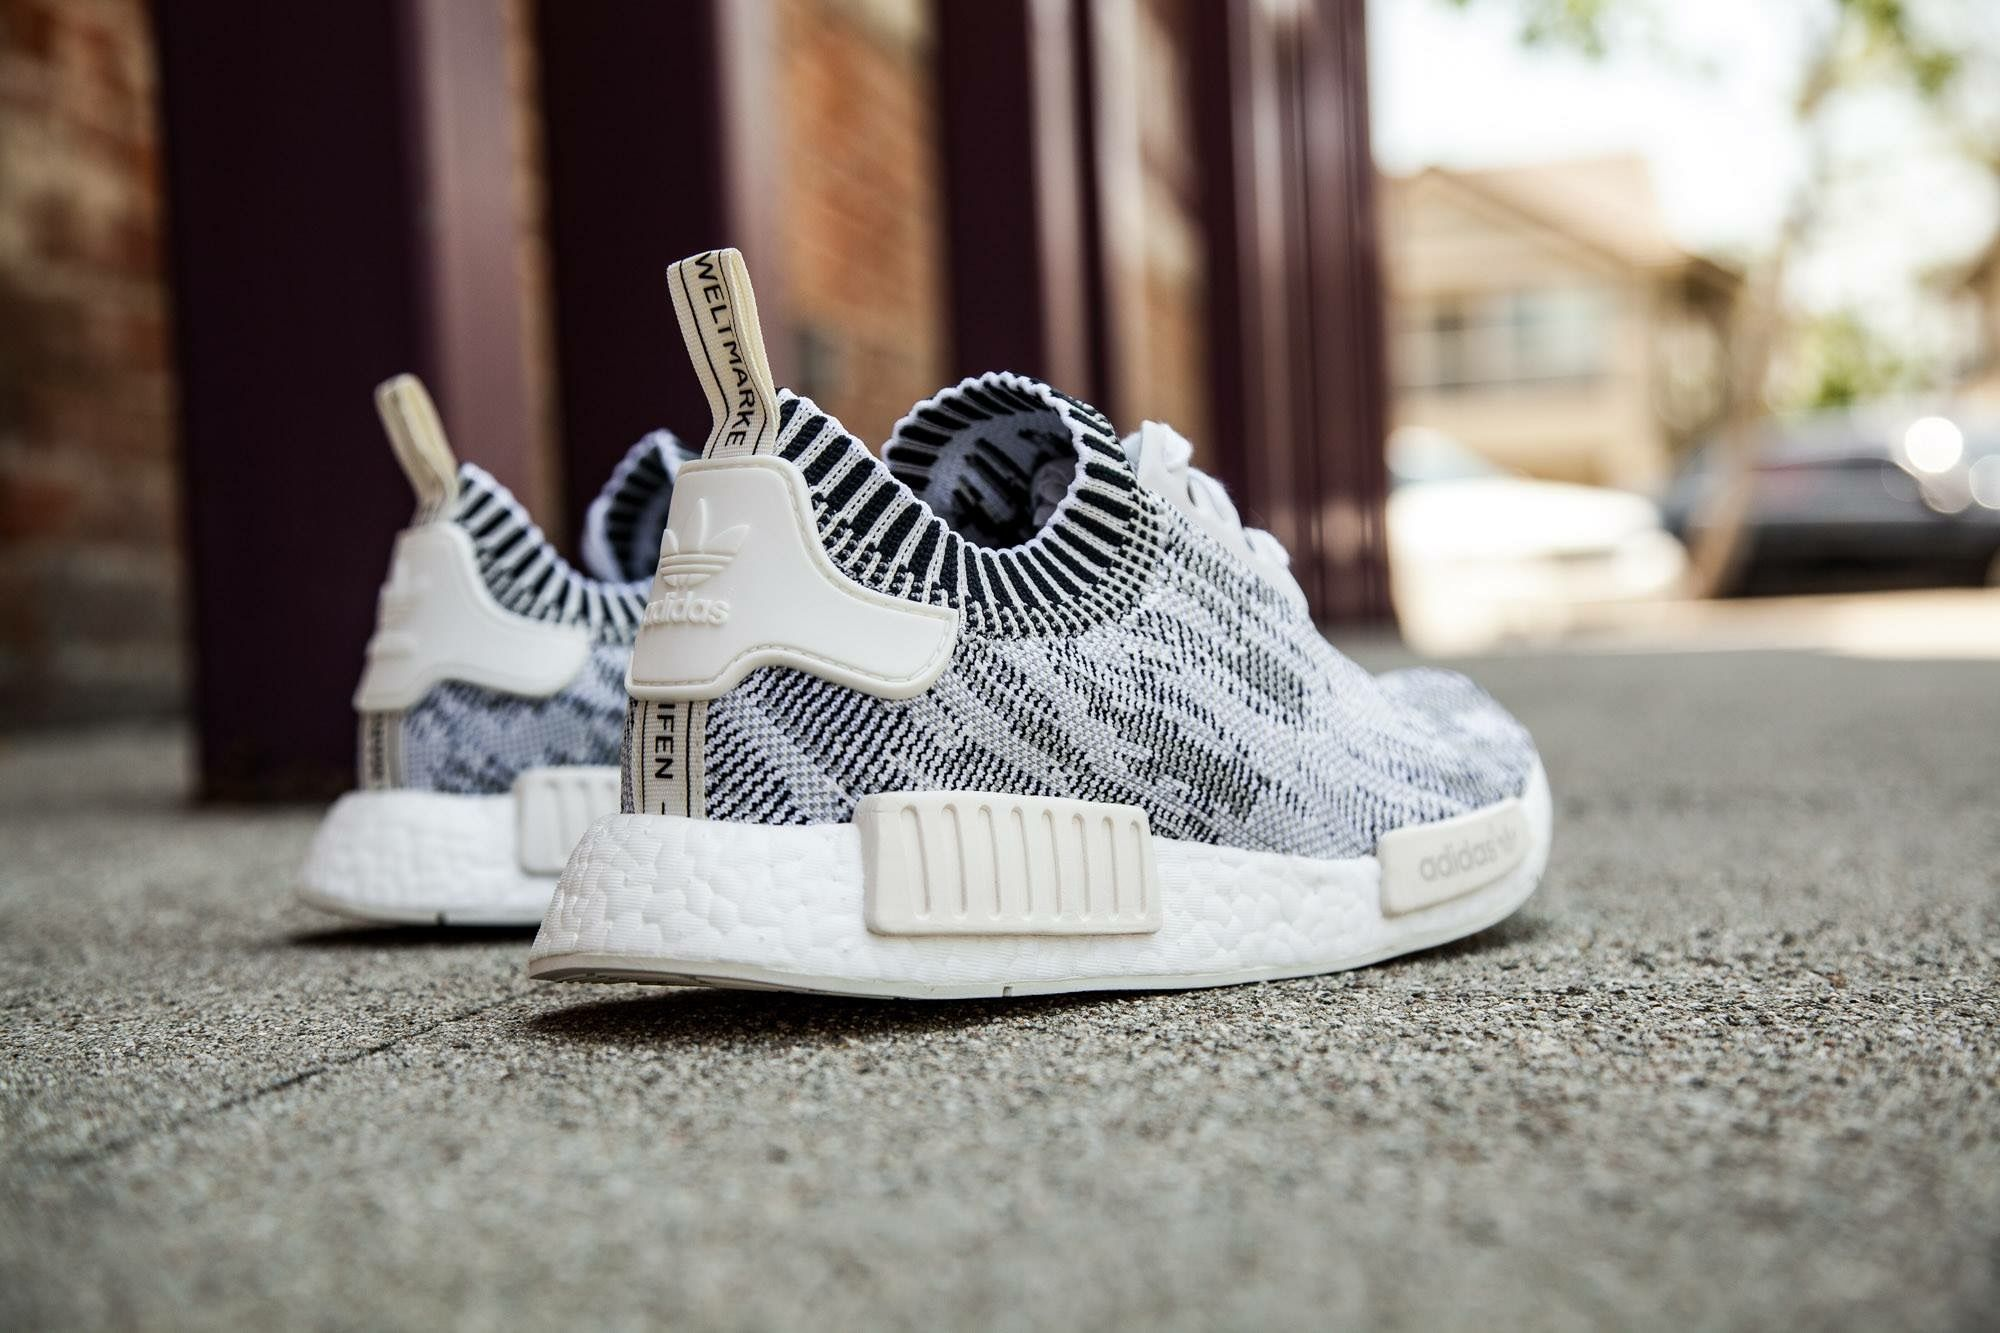 adidas gazelle men white adidas nmd women grey glitch camo